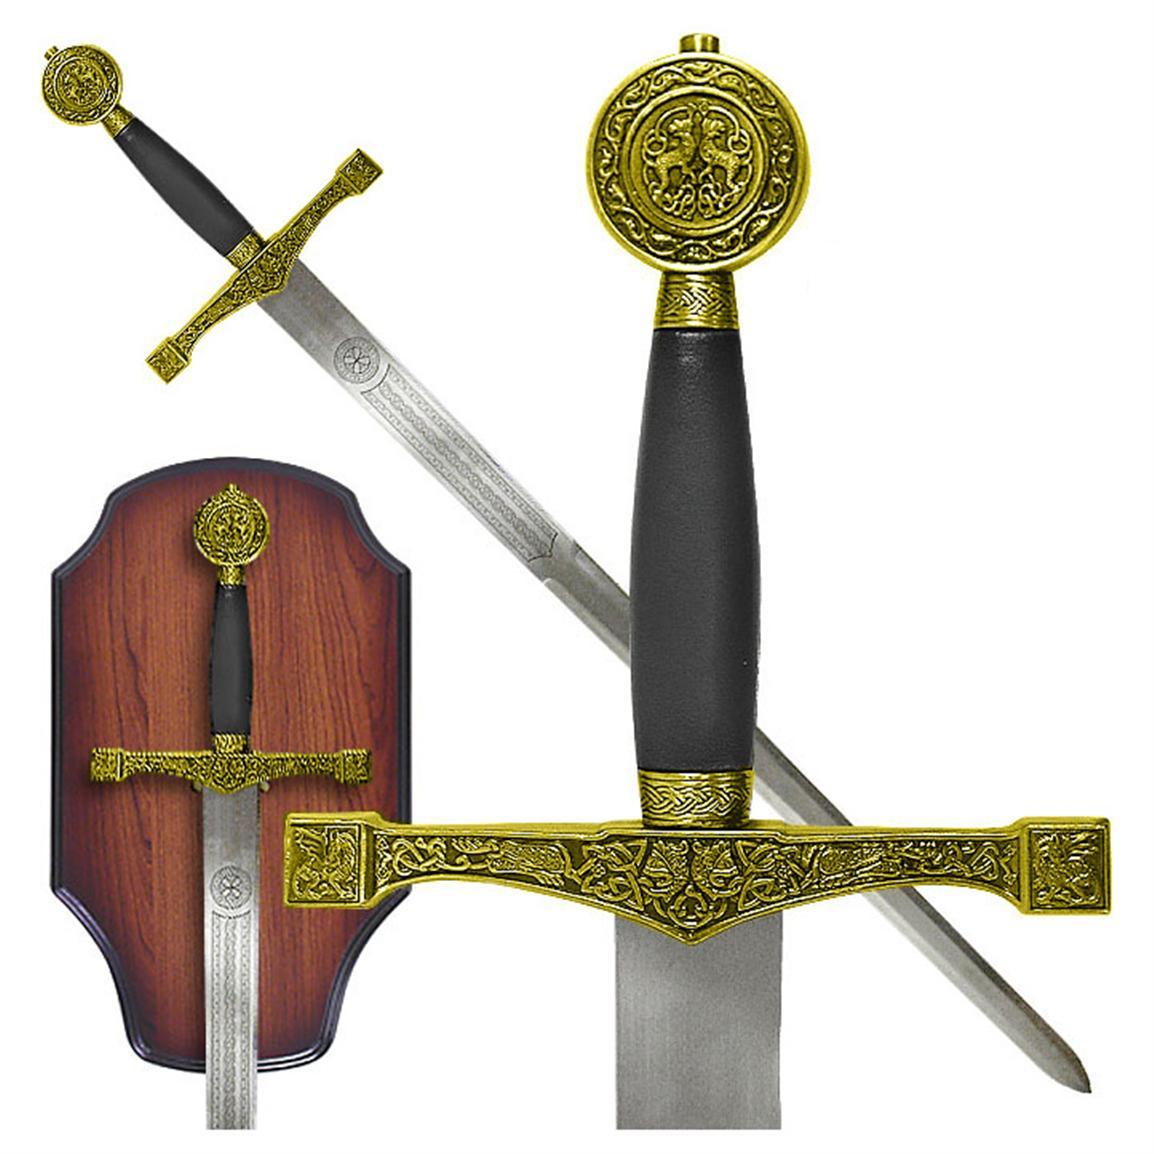 Legendary King of the Britons Sword